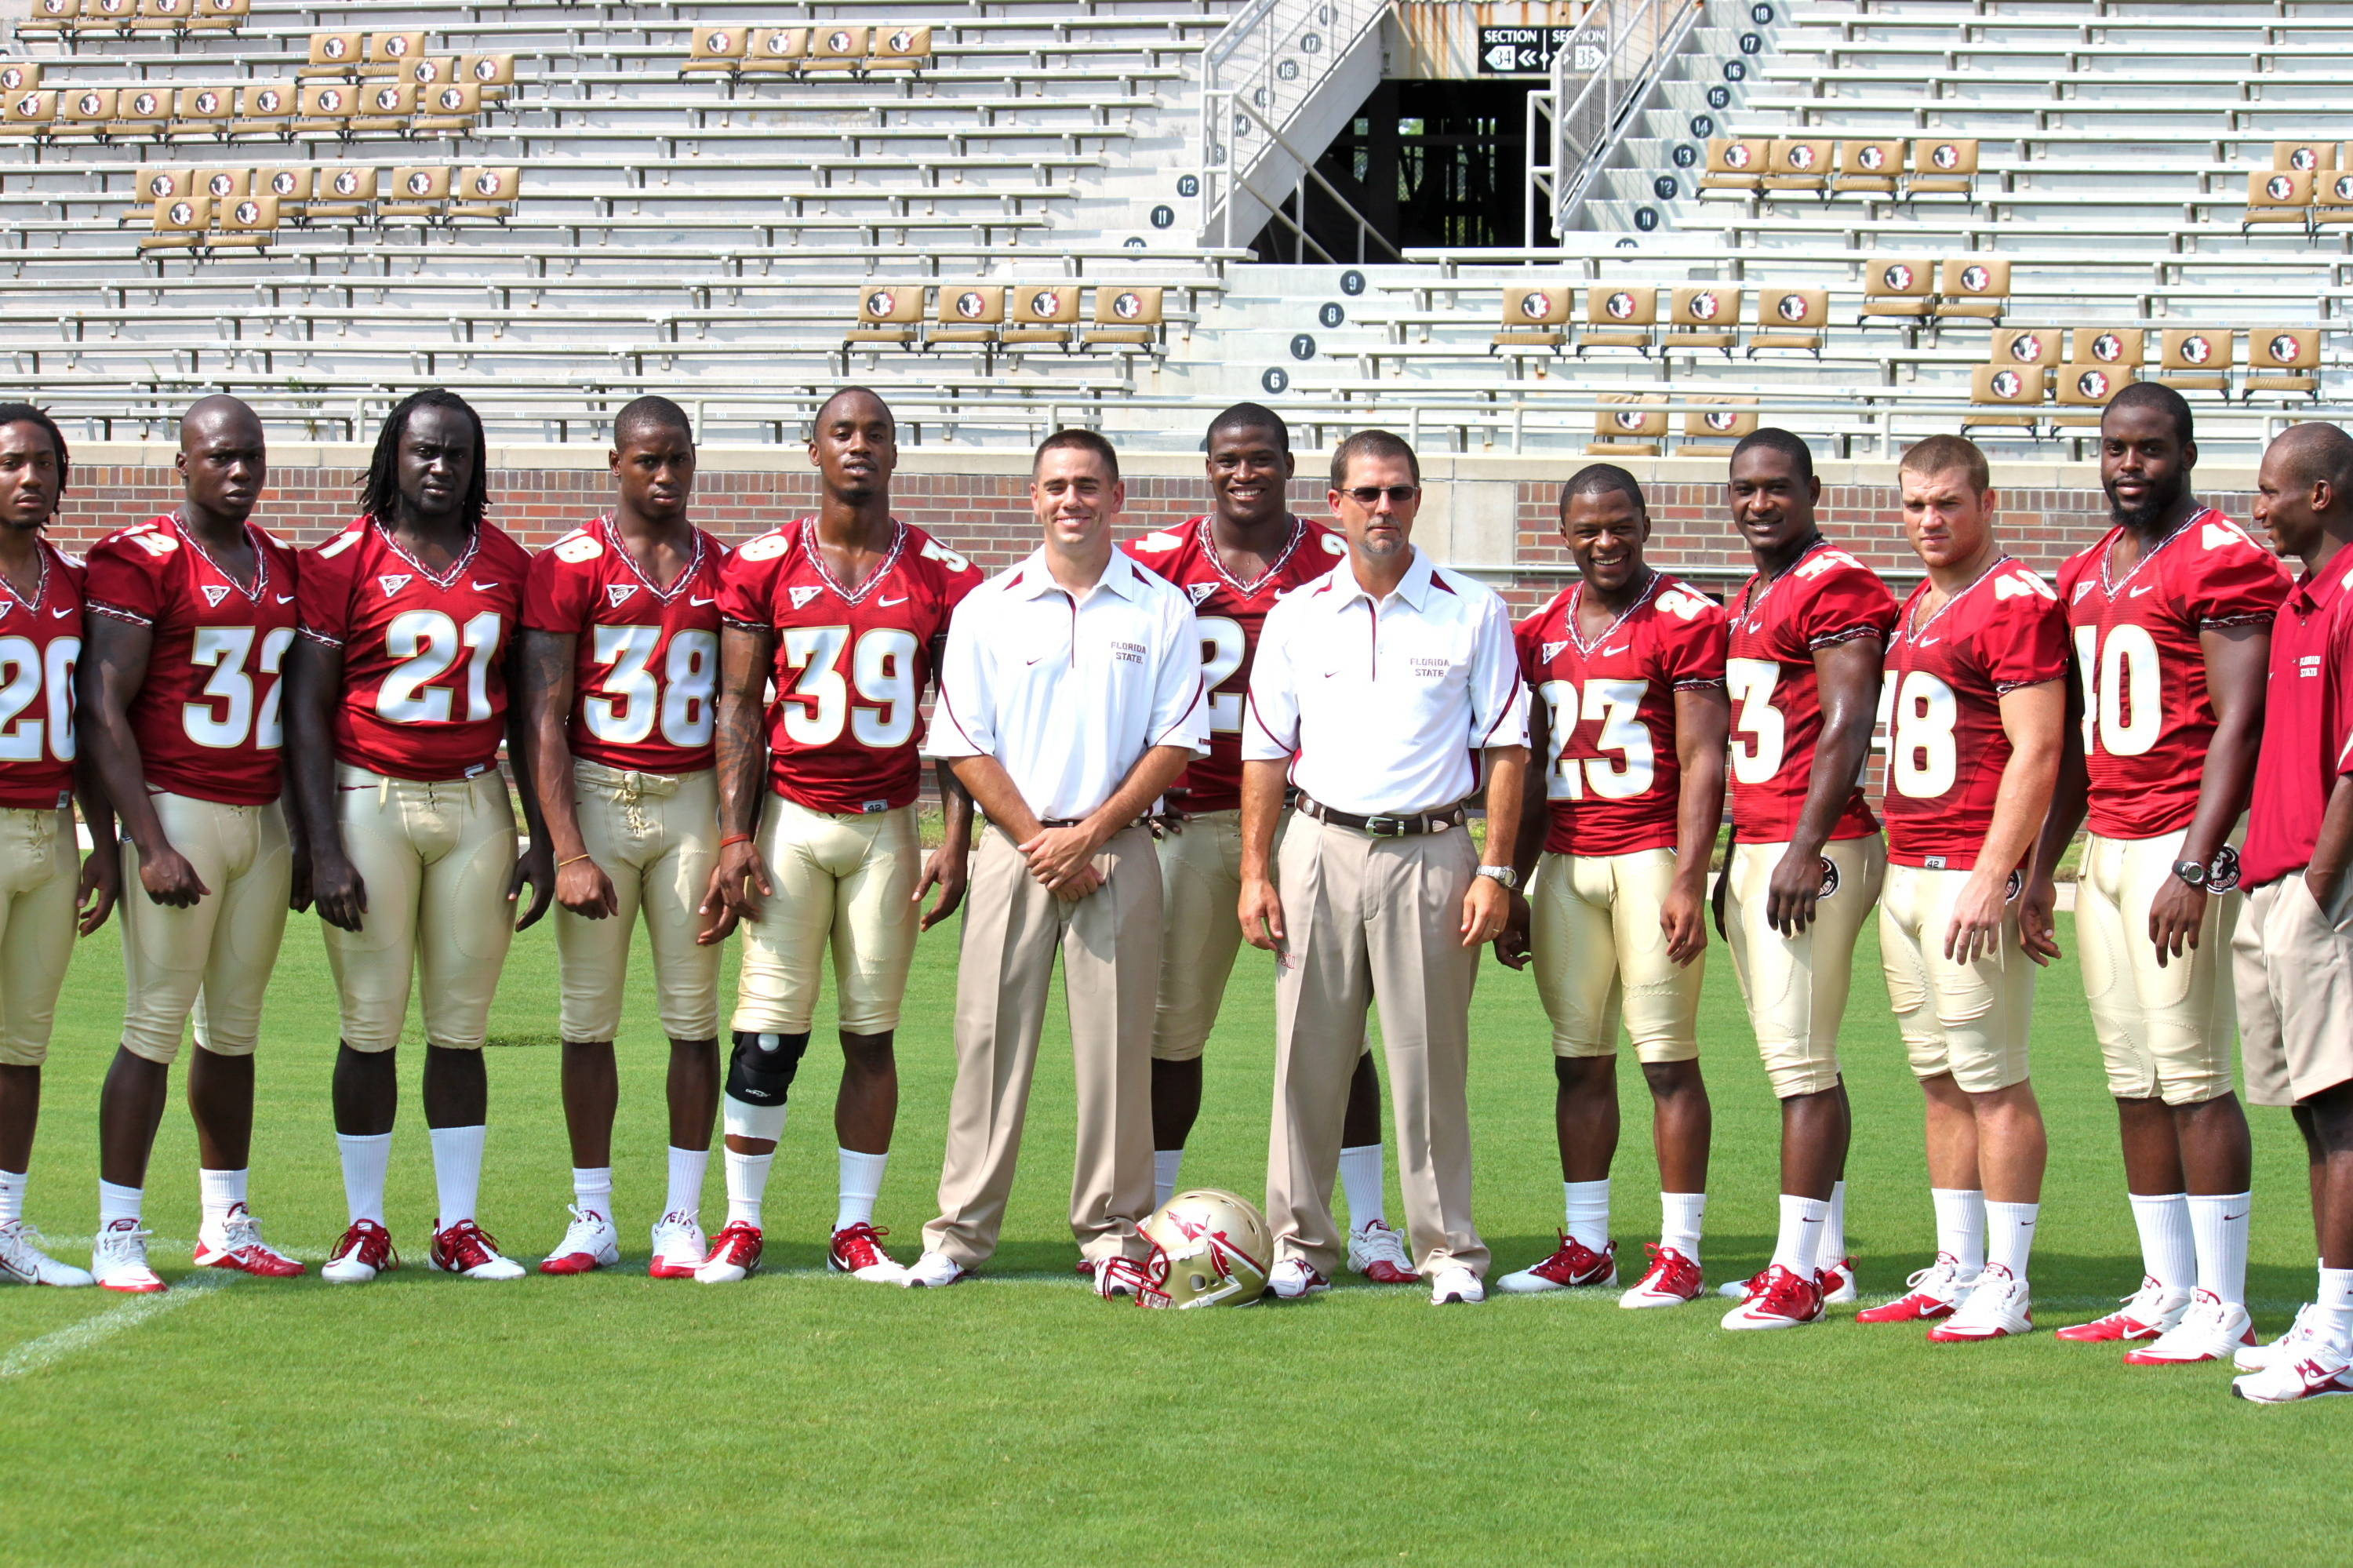 The Florida State running backs.